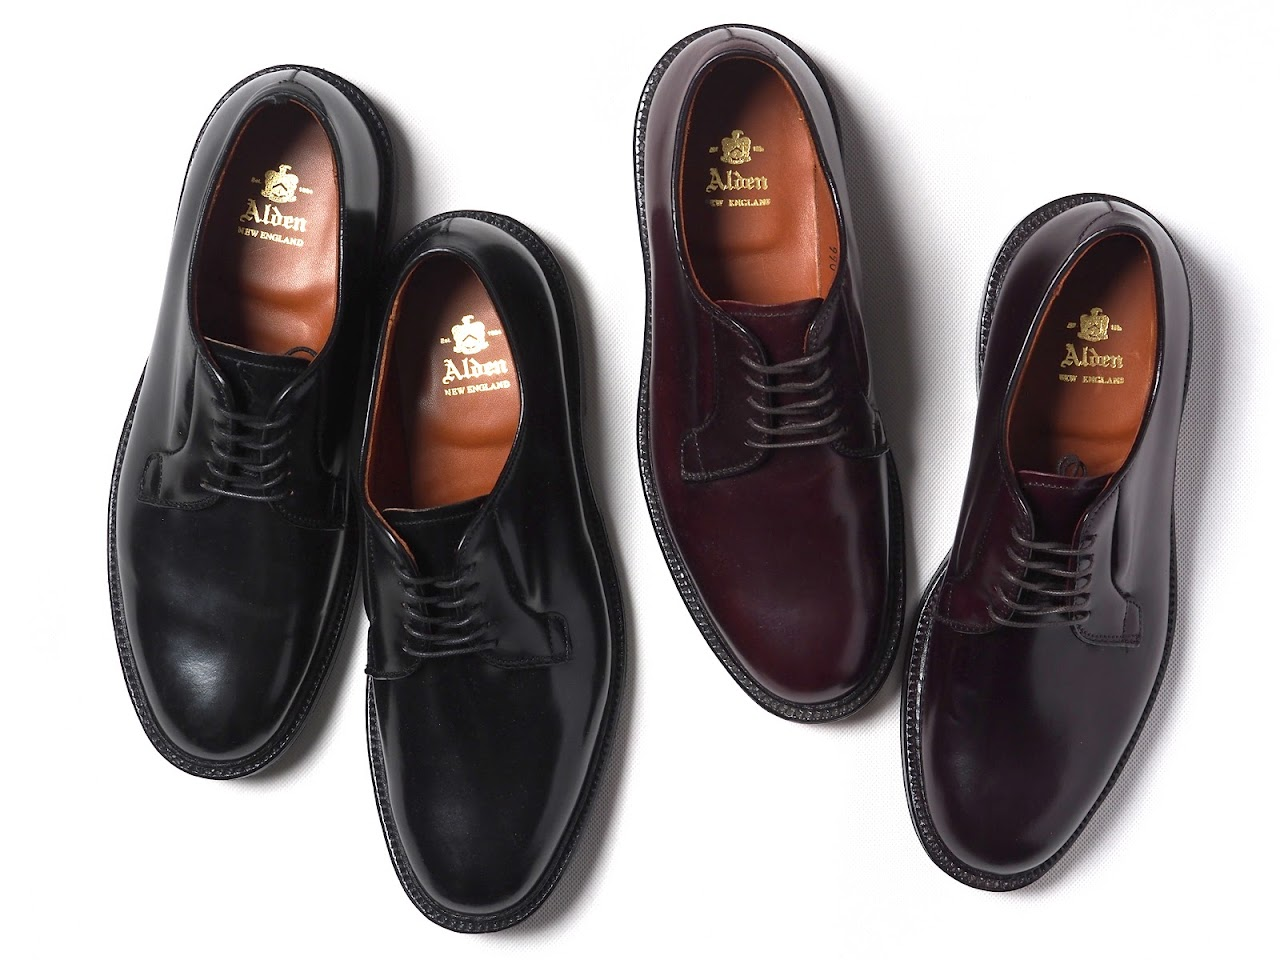 Alden / 990 & 9901 Plain Toe Blucher Oxford Shell Cordovan